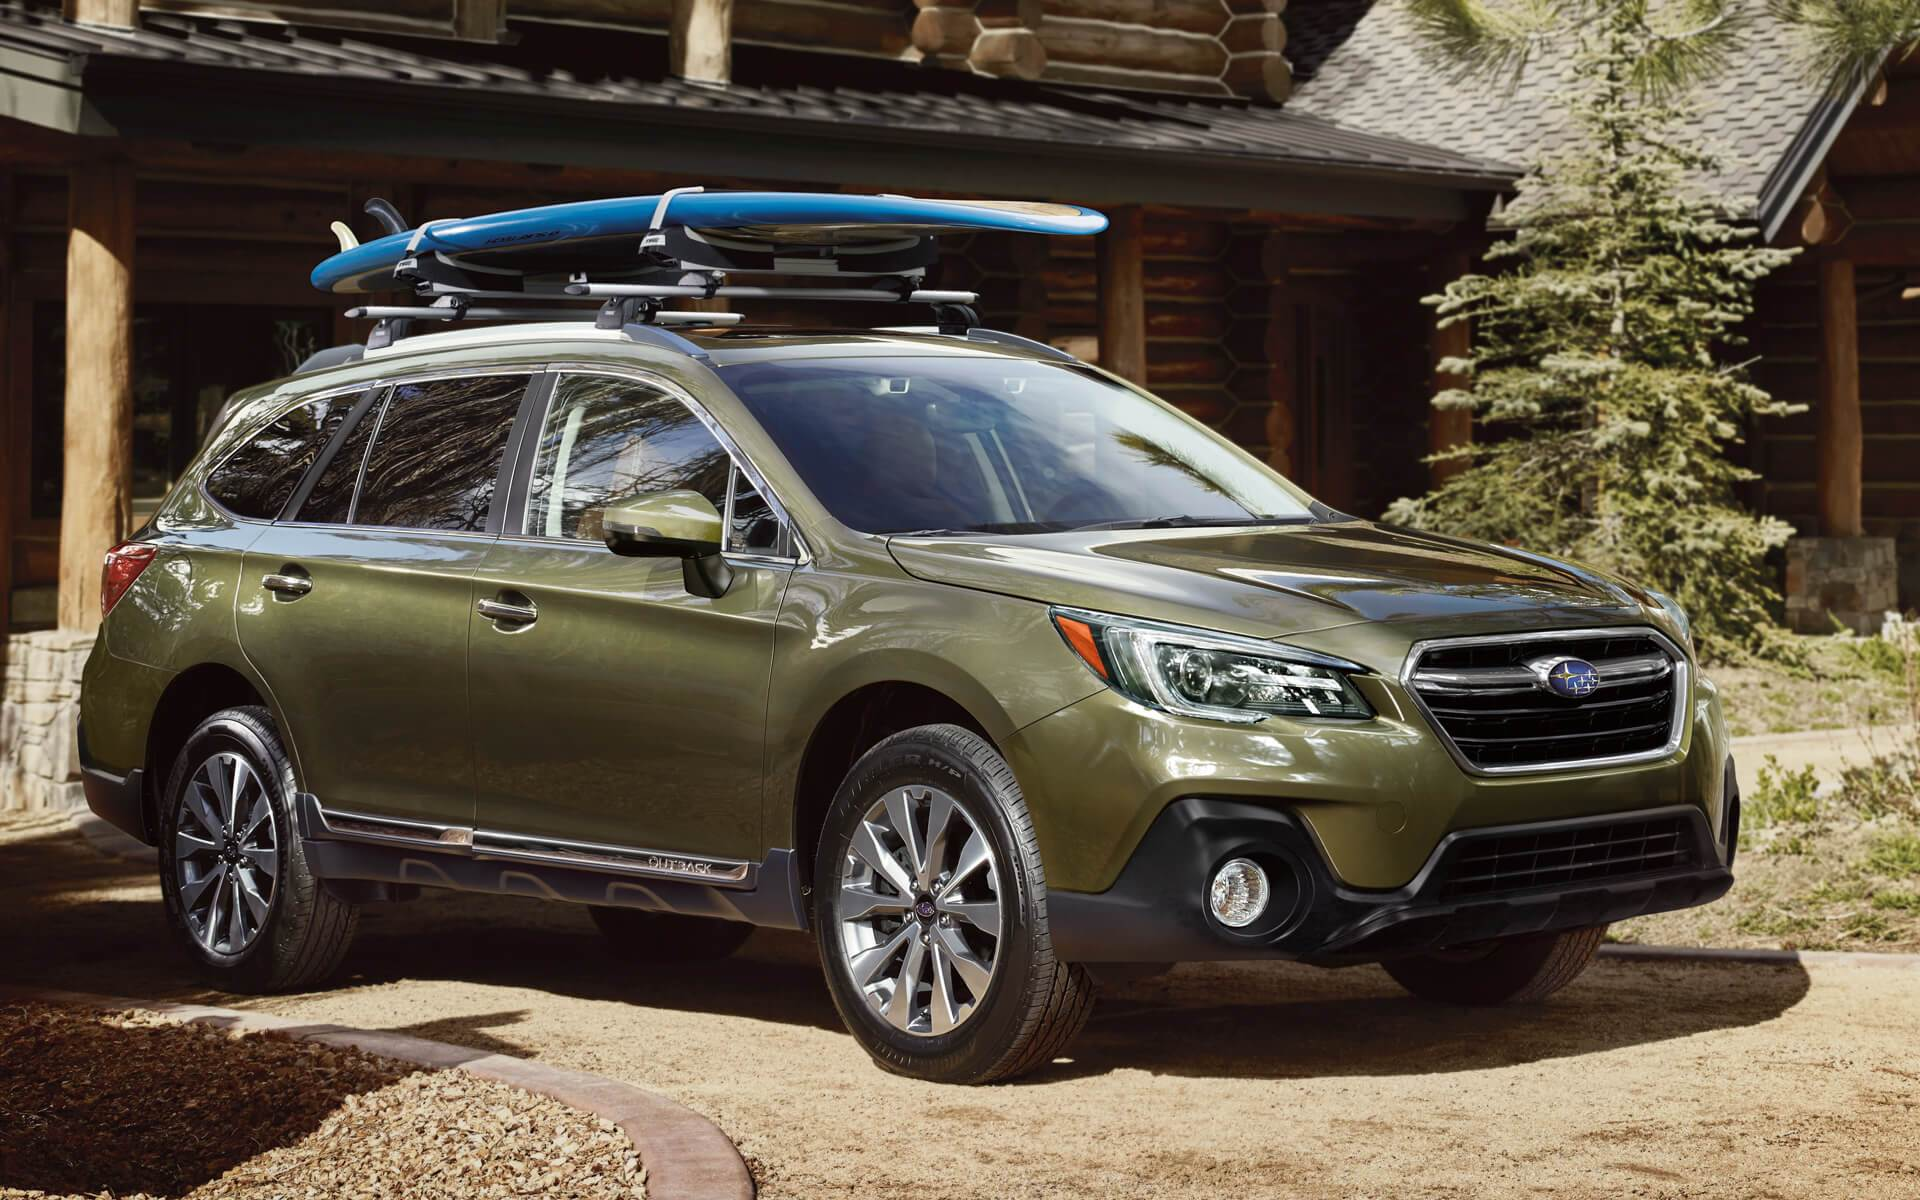 2018 Subaru Outback Vs 2017